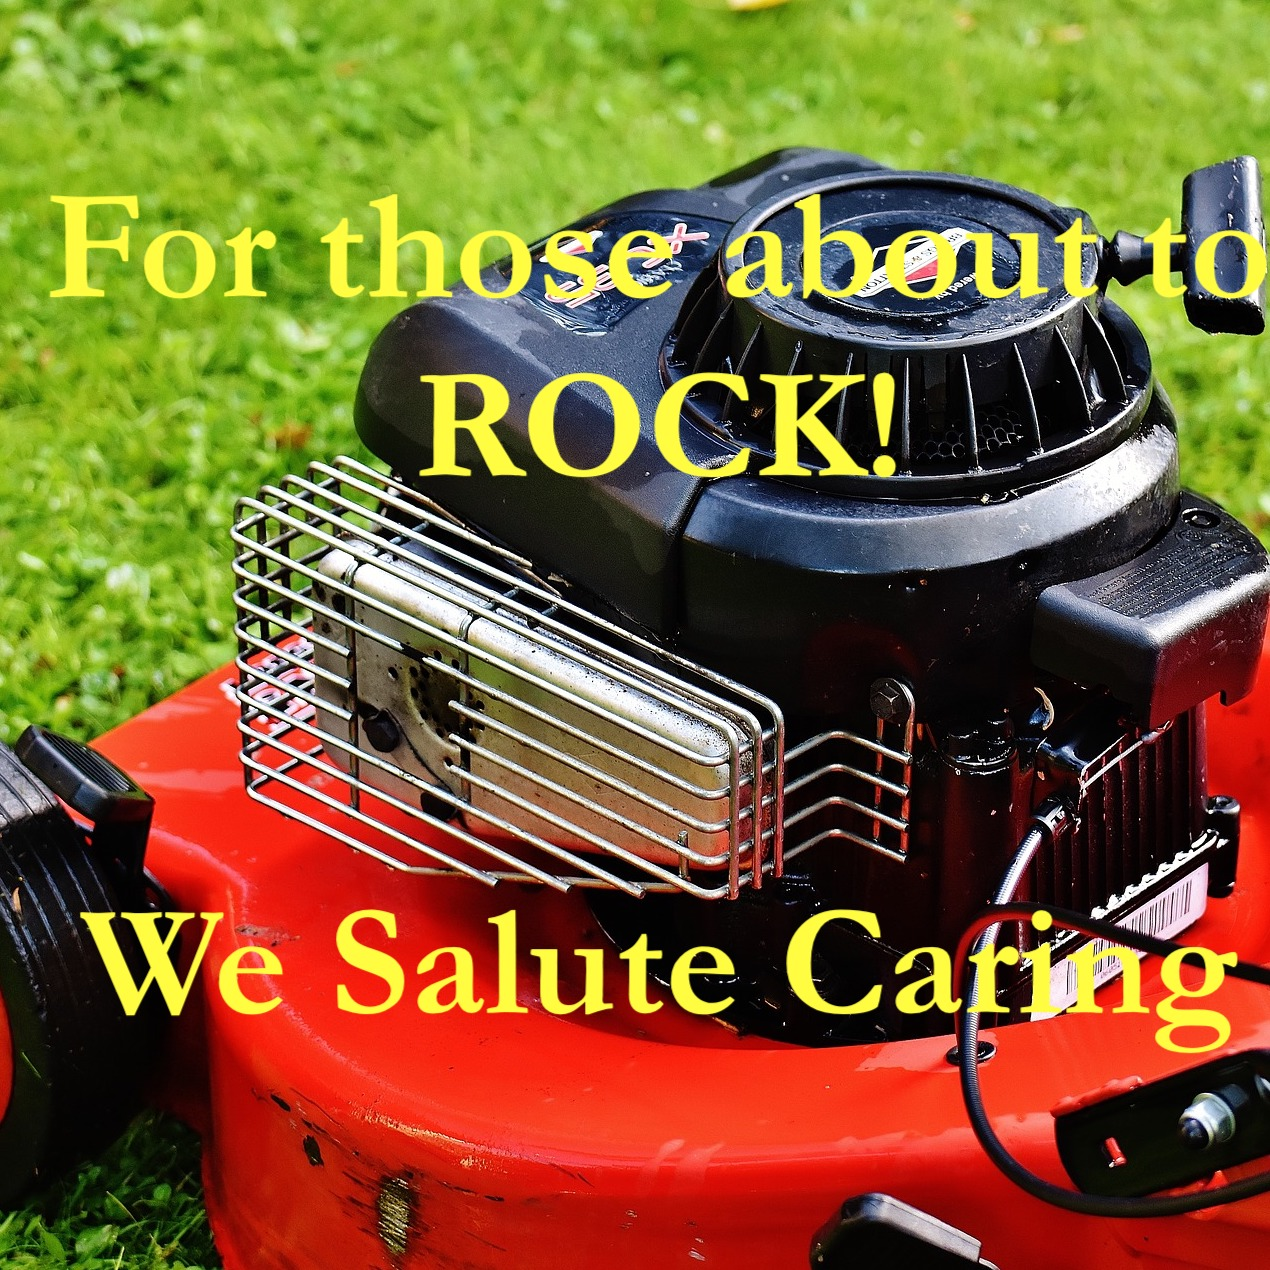 For those about to ROCK!  We Salute Caring